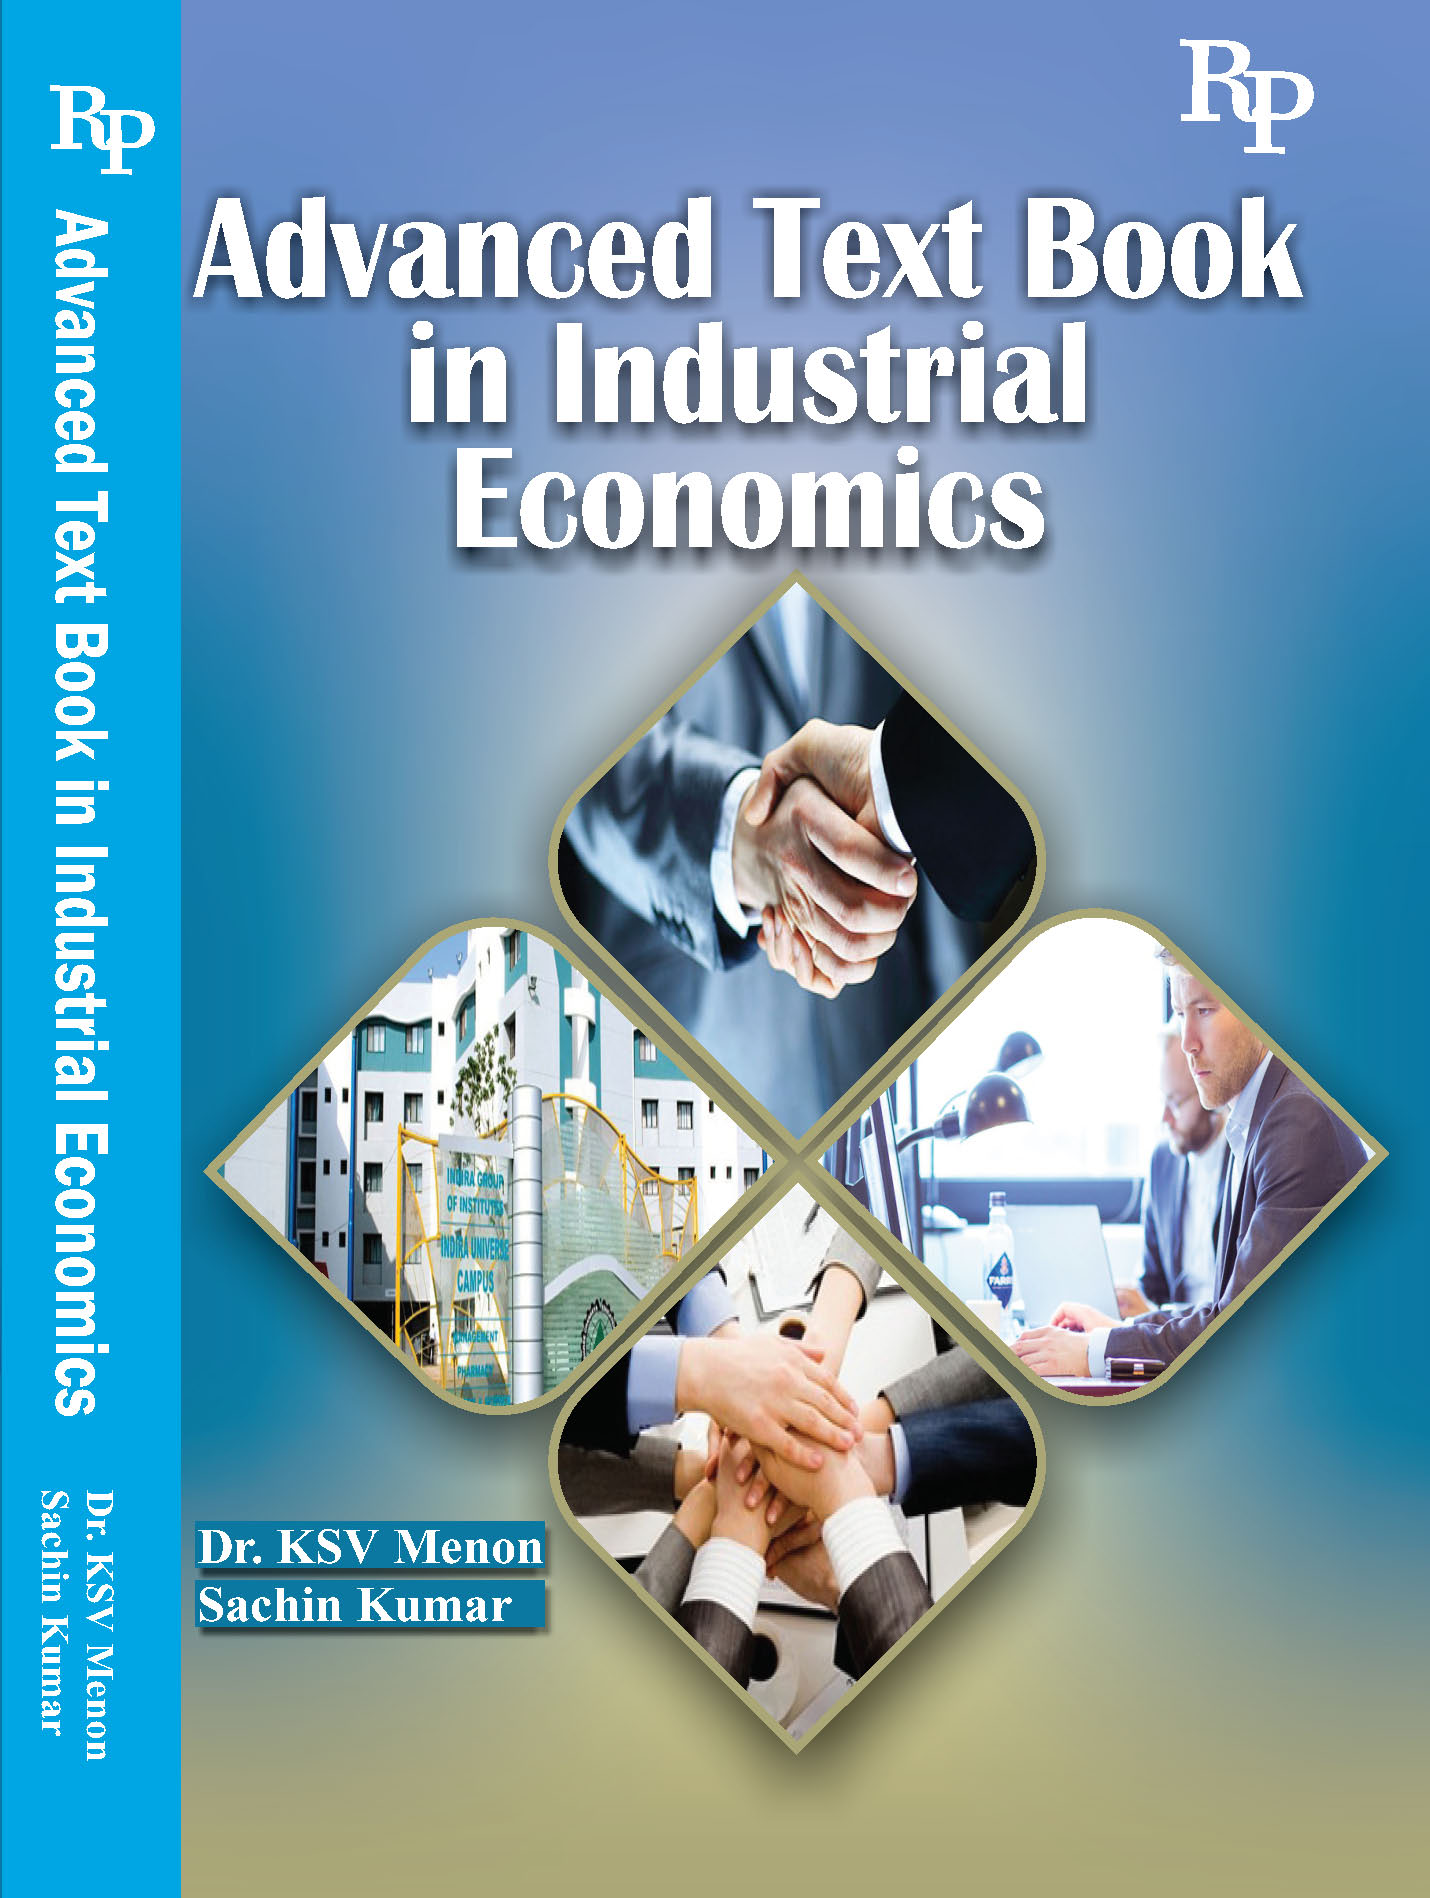 Advanced Text Book in Industrial Economics